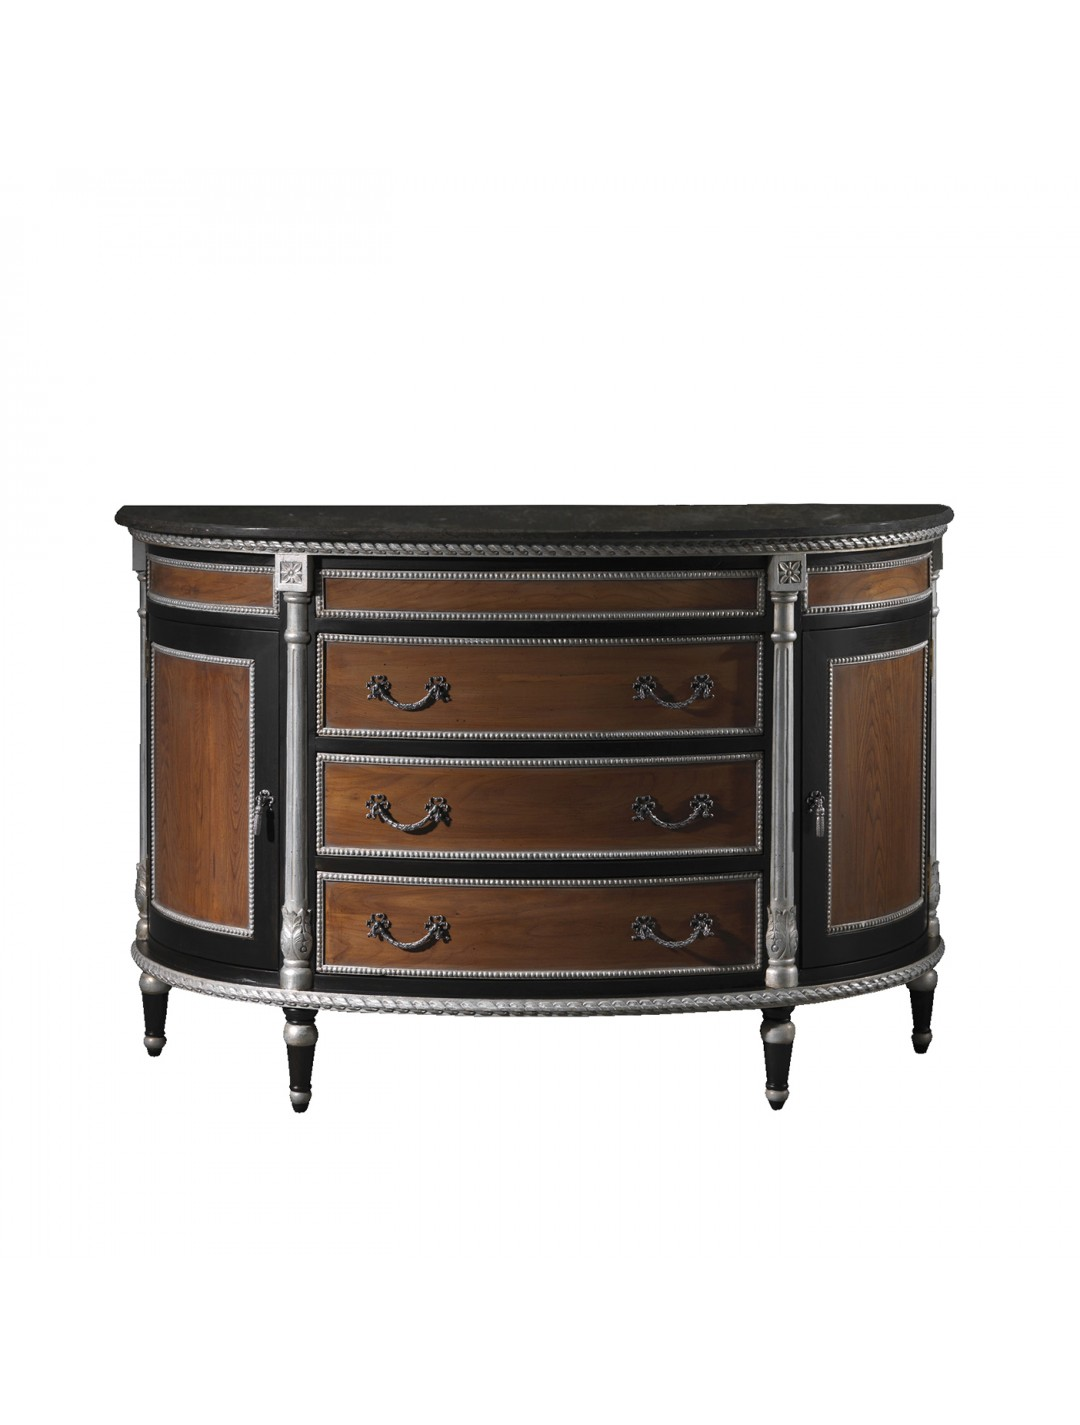 ANGELES SEMICIRCULAR BATH CABINET